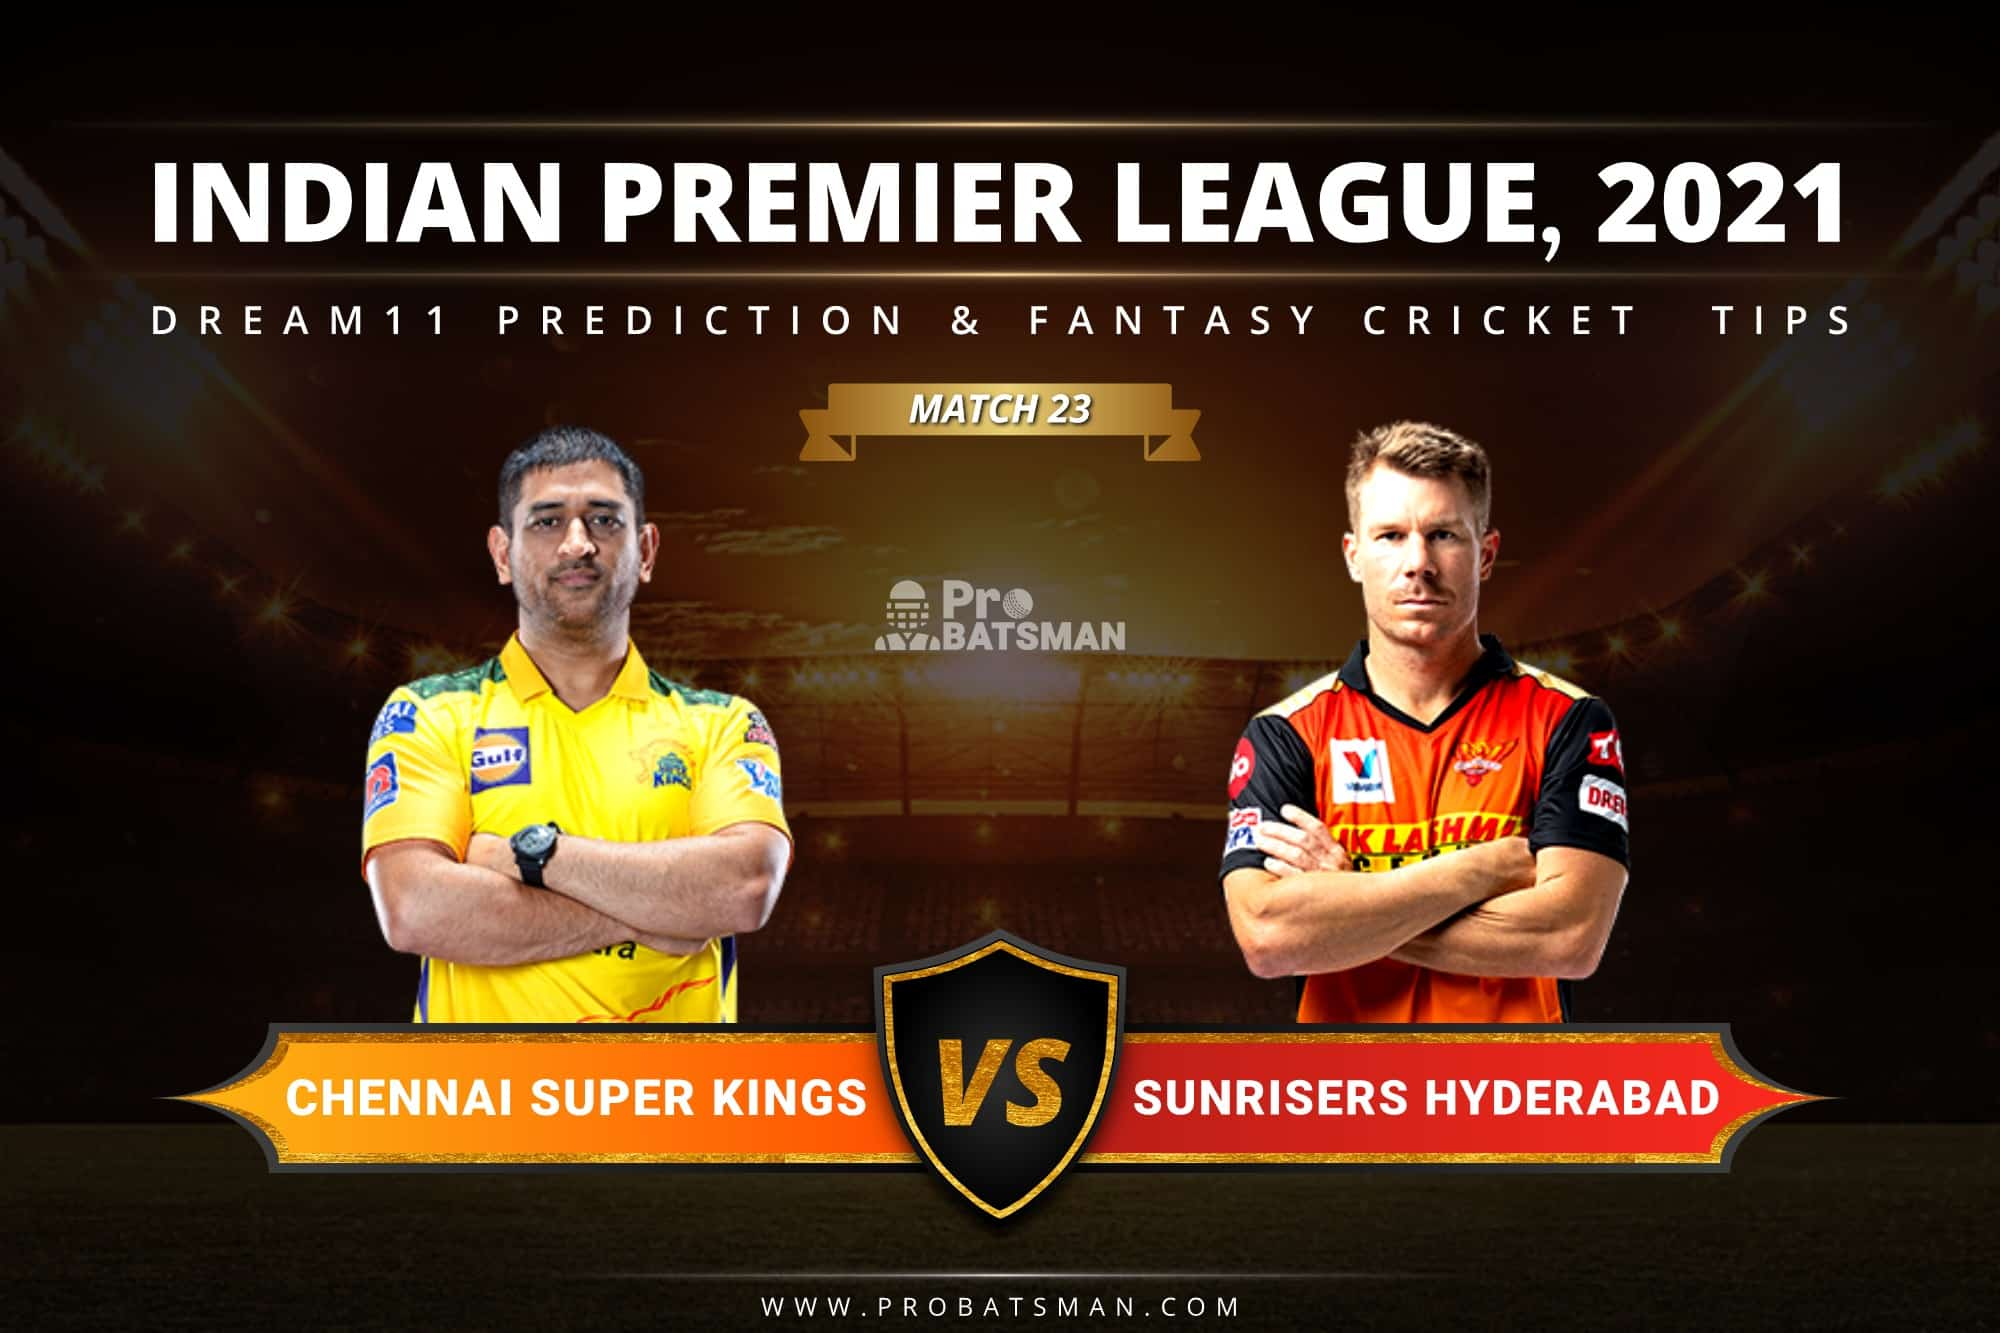 CSK vs SRH Dream11 Prediction: Fantasy Cricket Tips, Playing XI, Pitch Report, Stats & Injury Updates of Match 23, IPL 2021